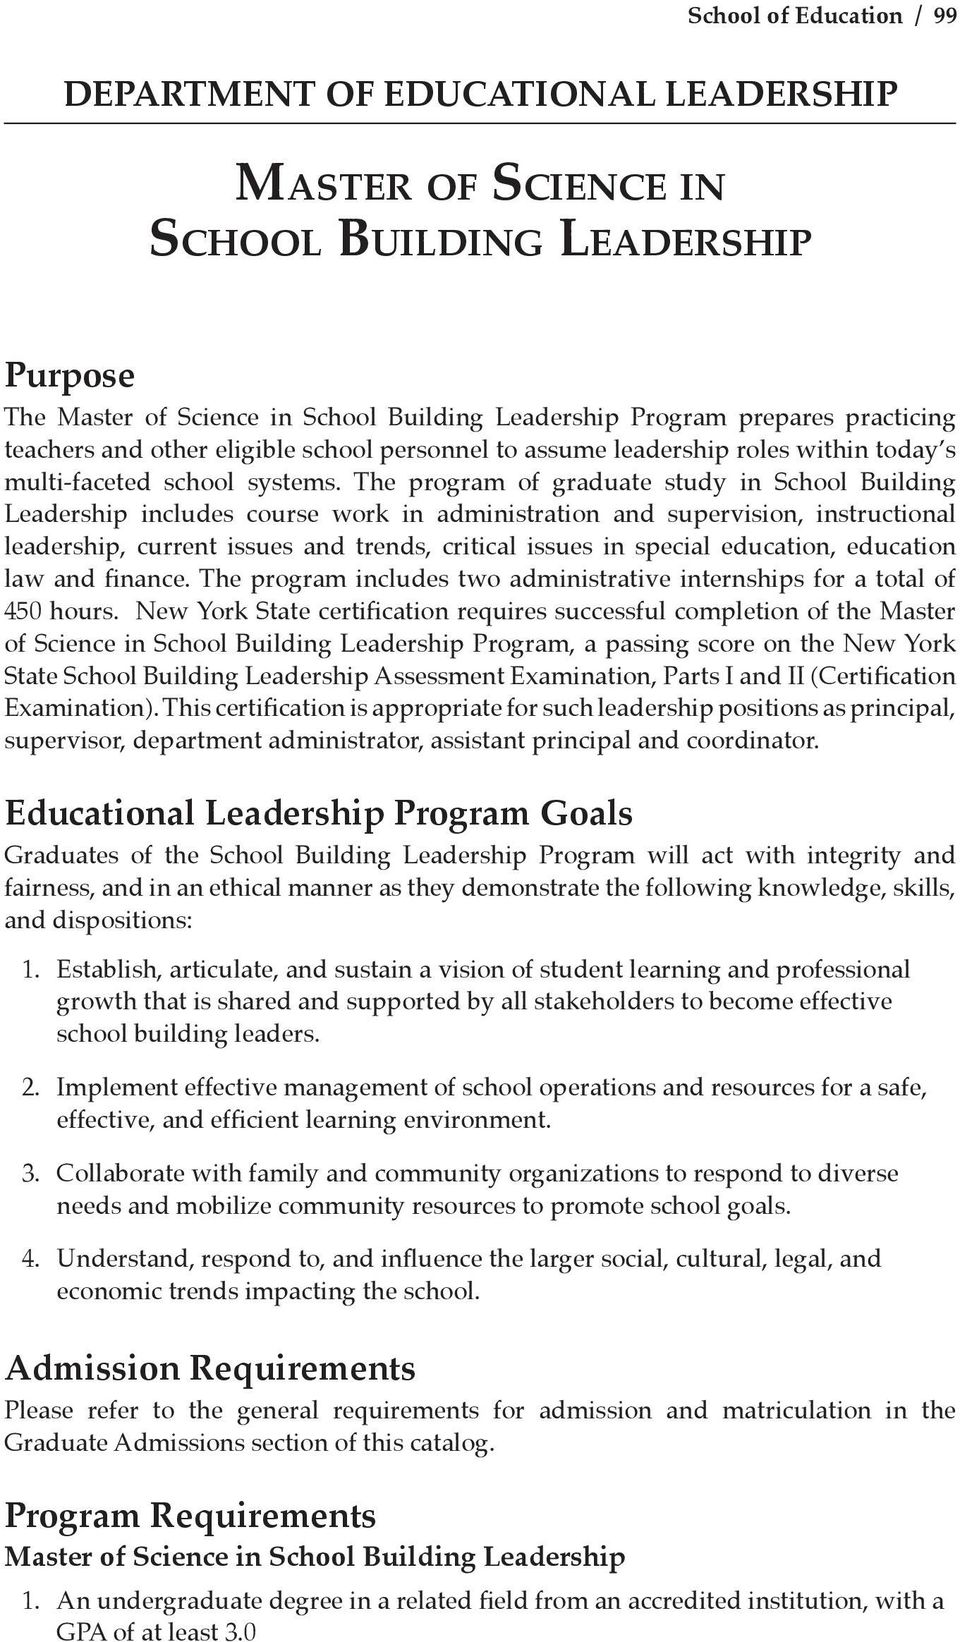 The program of graduate study in School Building Leadership includes course work in administration and supervision, instructional leadership, current issues and trends, critical issues in special